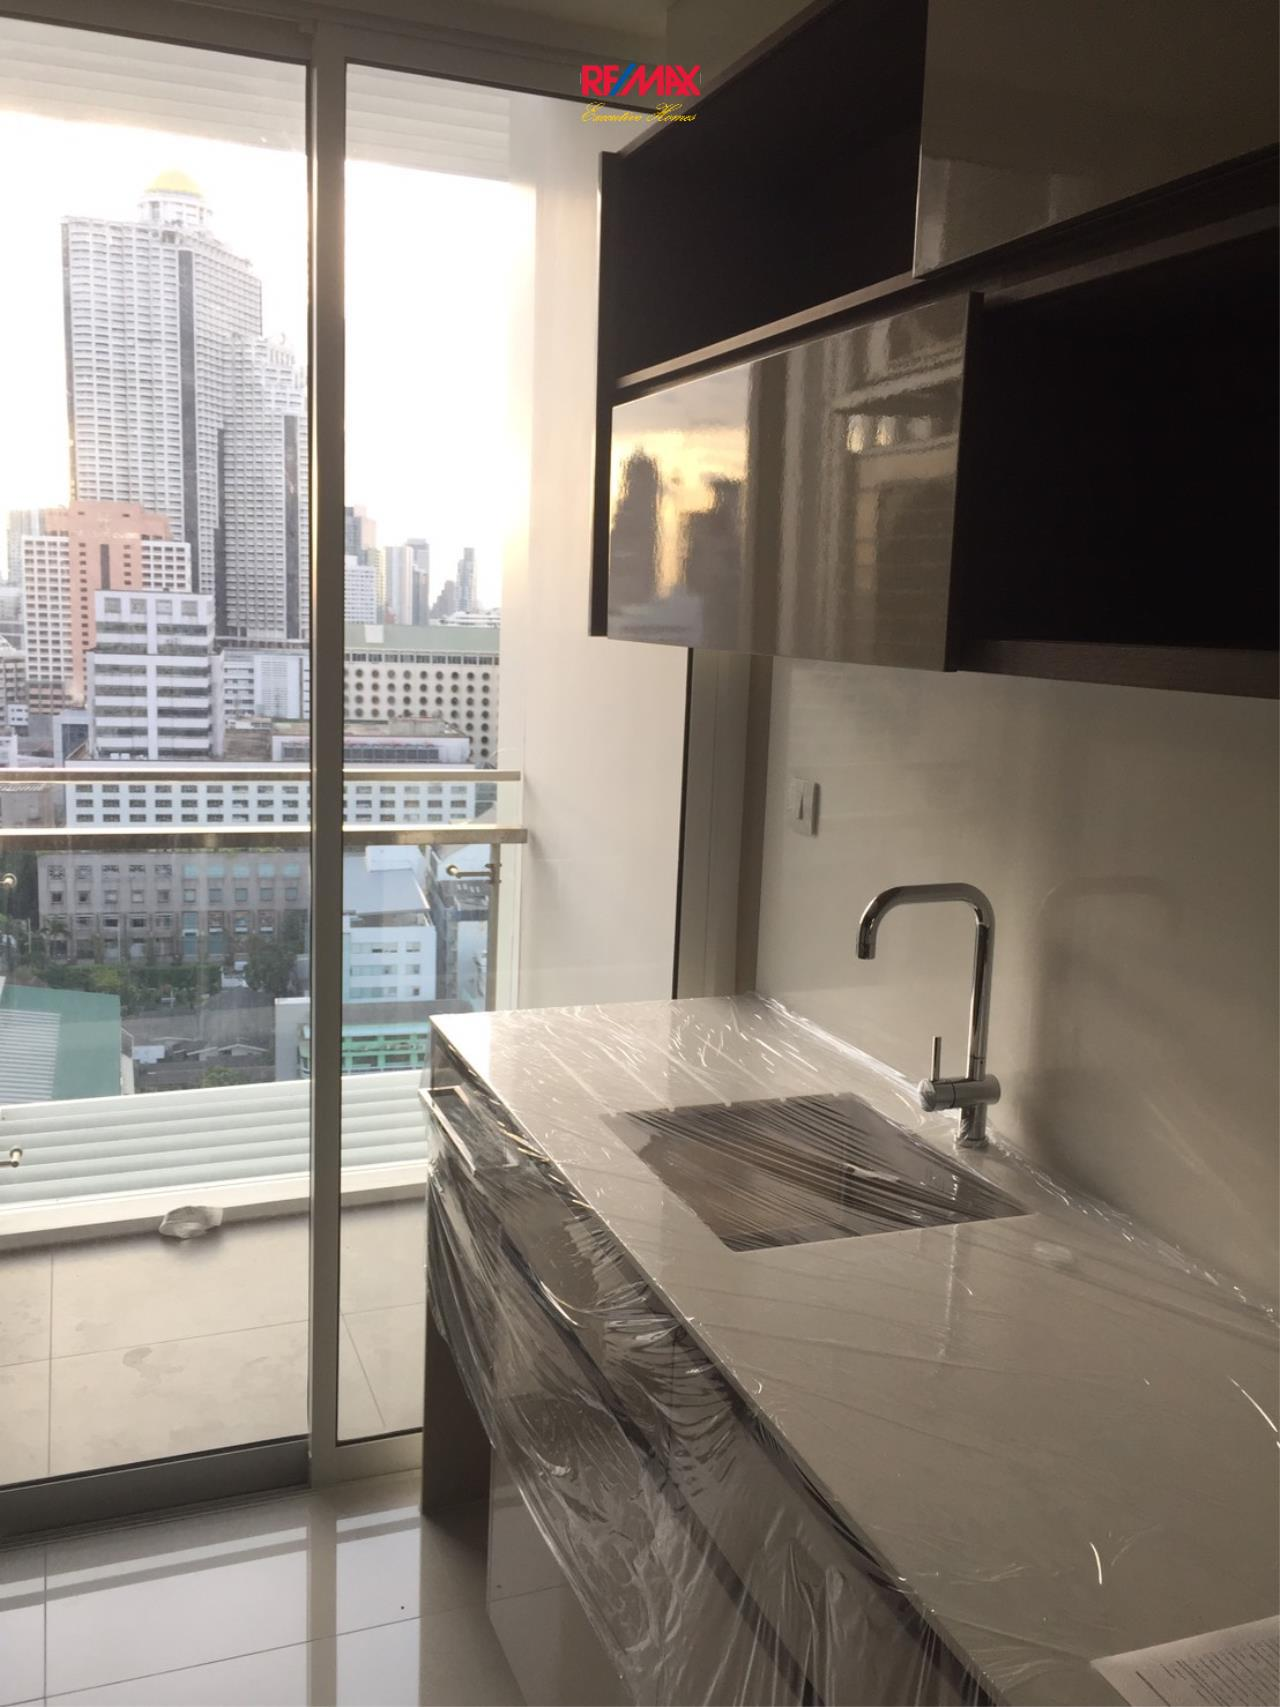 RE/MAX Executive Homes Agency's Spacious 1 Bedroom for Sale The Room Sathorn Pun 11